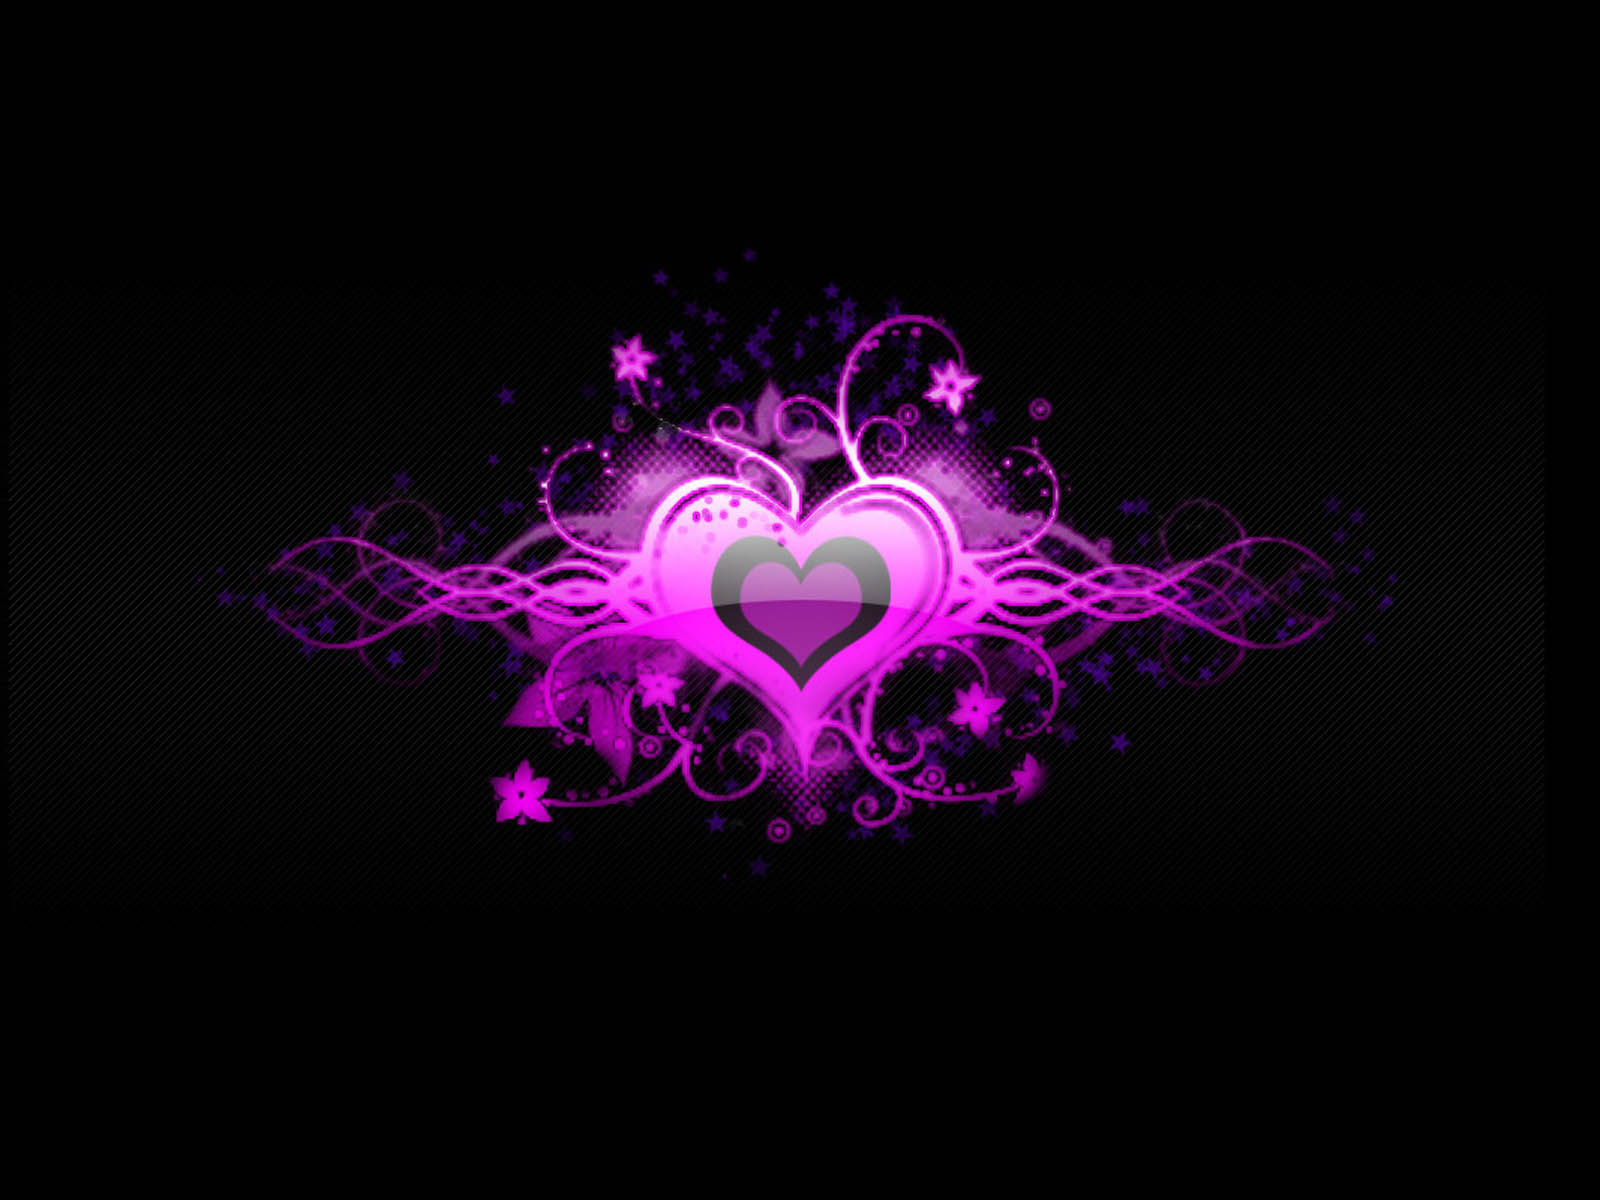 Love Wallpapers come : wallpapers: Love Heart Wallpapers